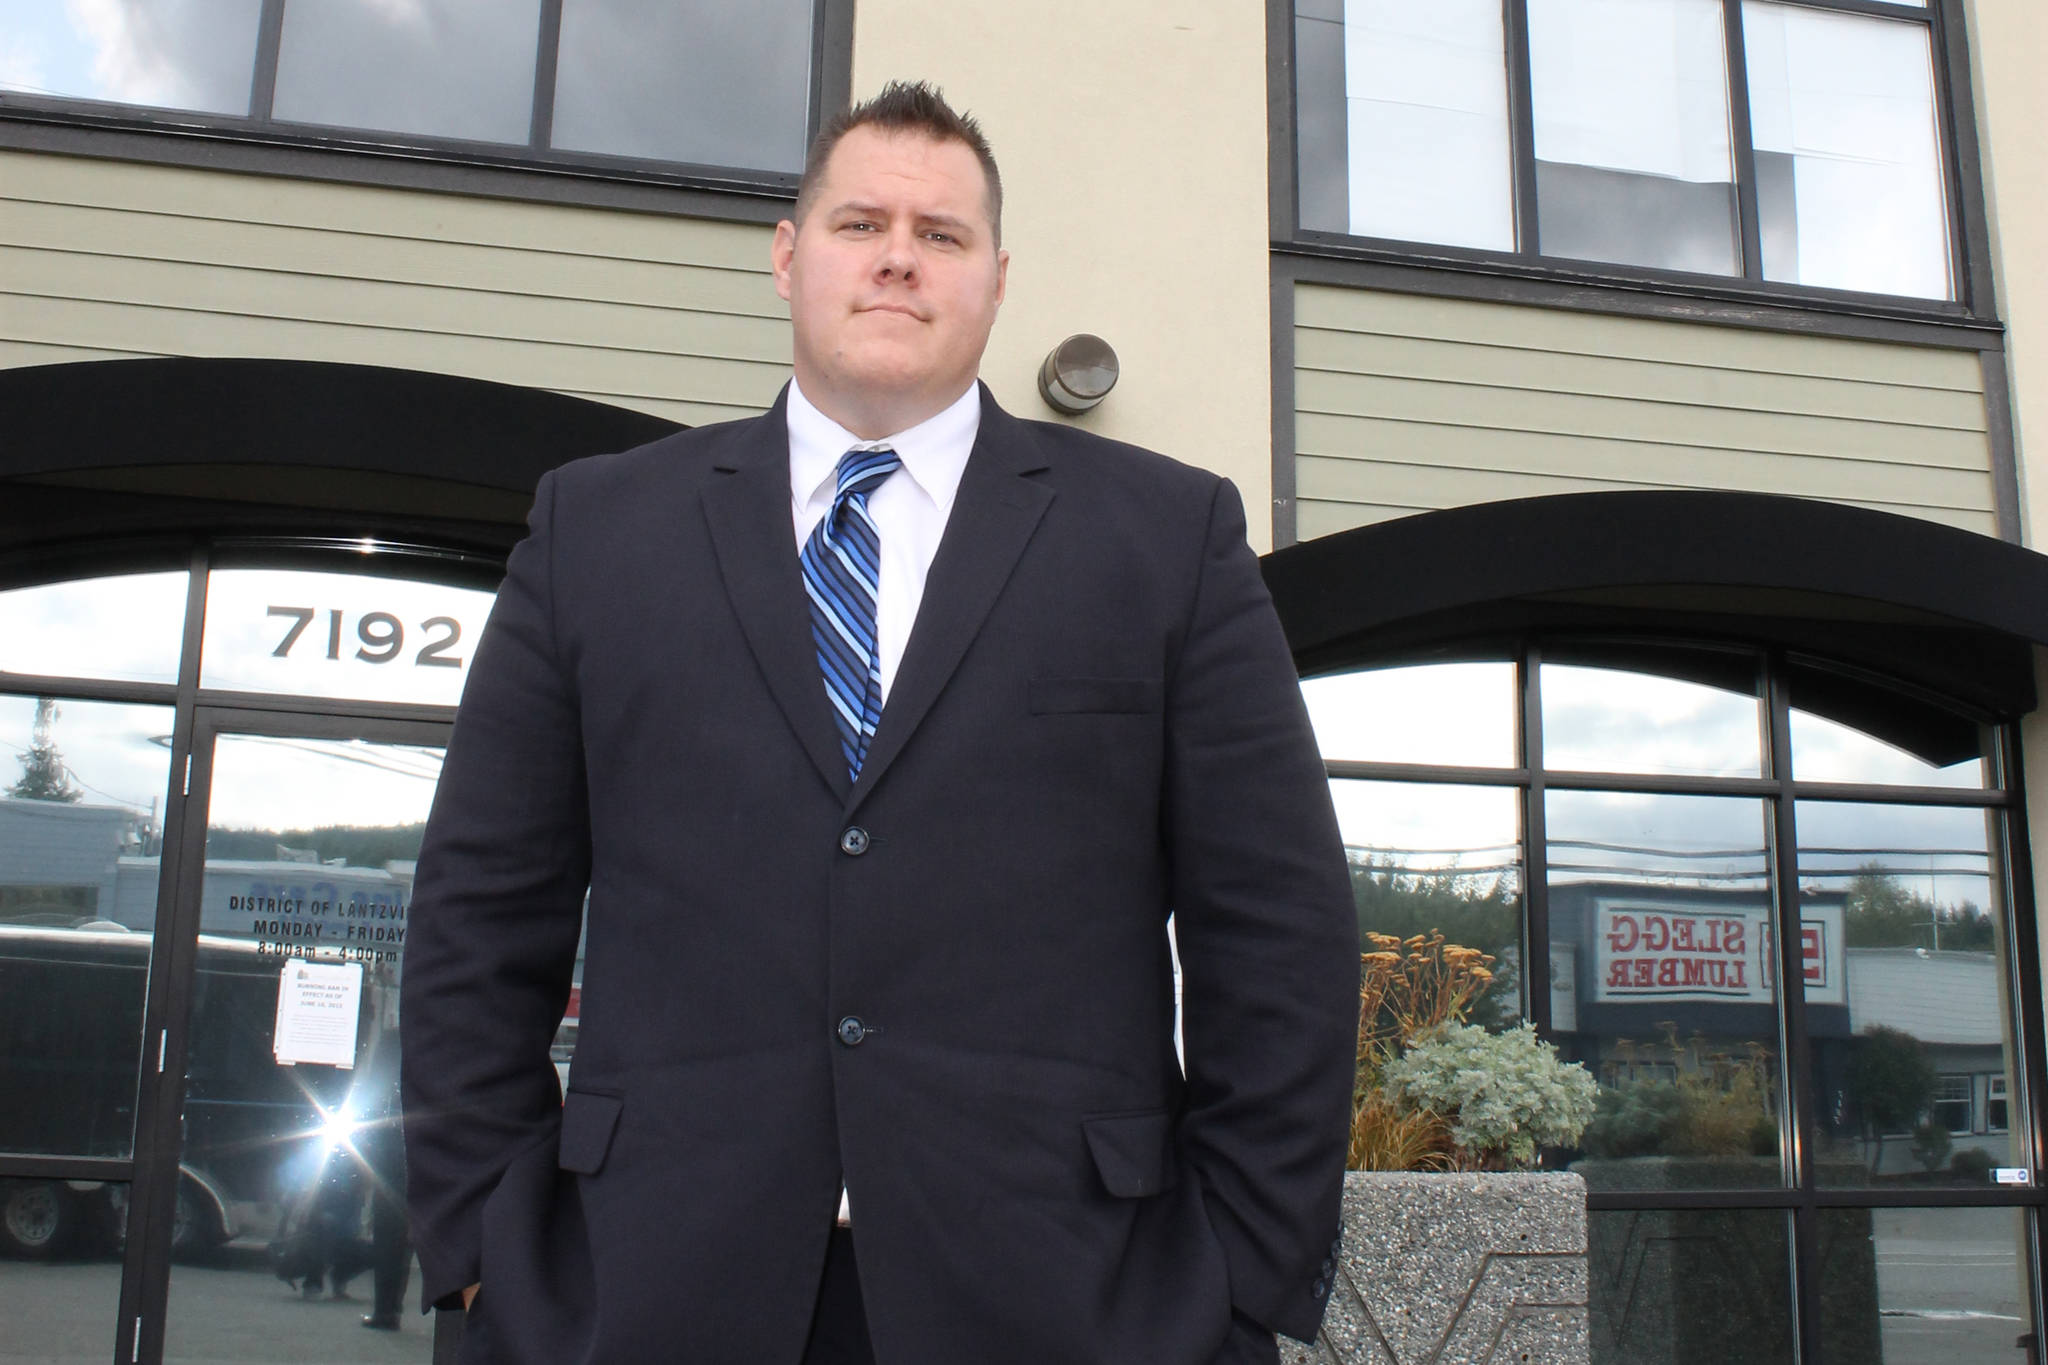 The City of Nanaimo has reached a settlement with its former chief operations officer, Brad McRae. (News Bulletin file photo)